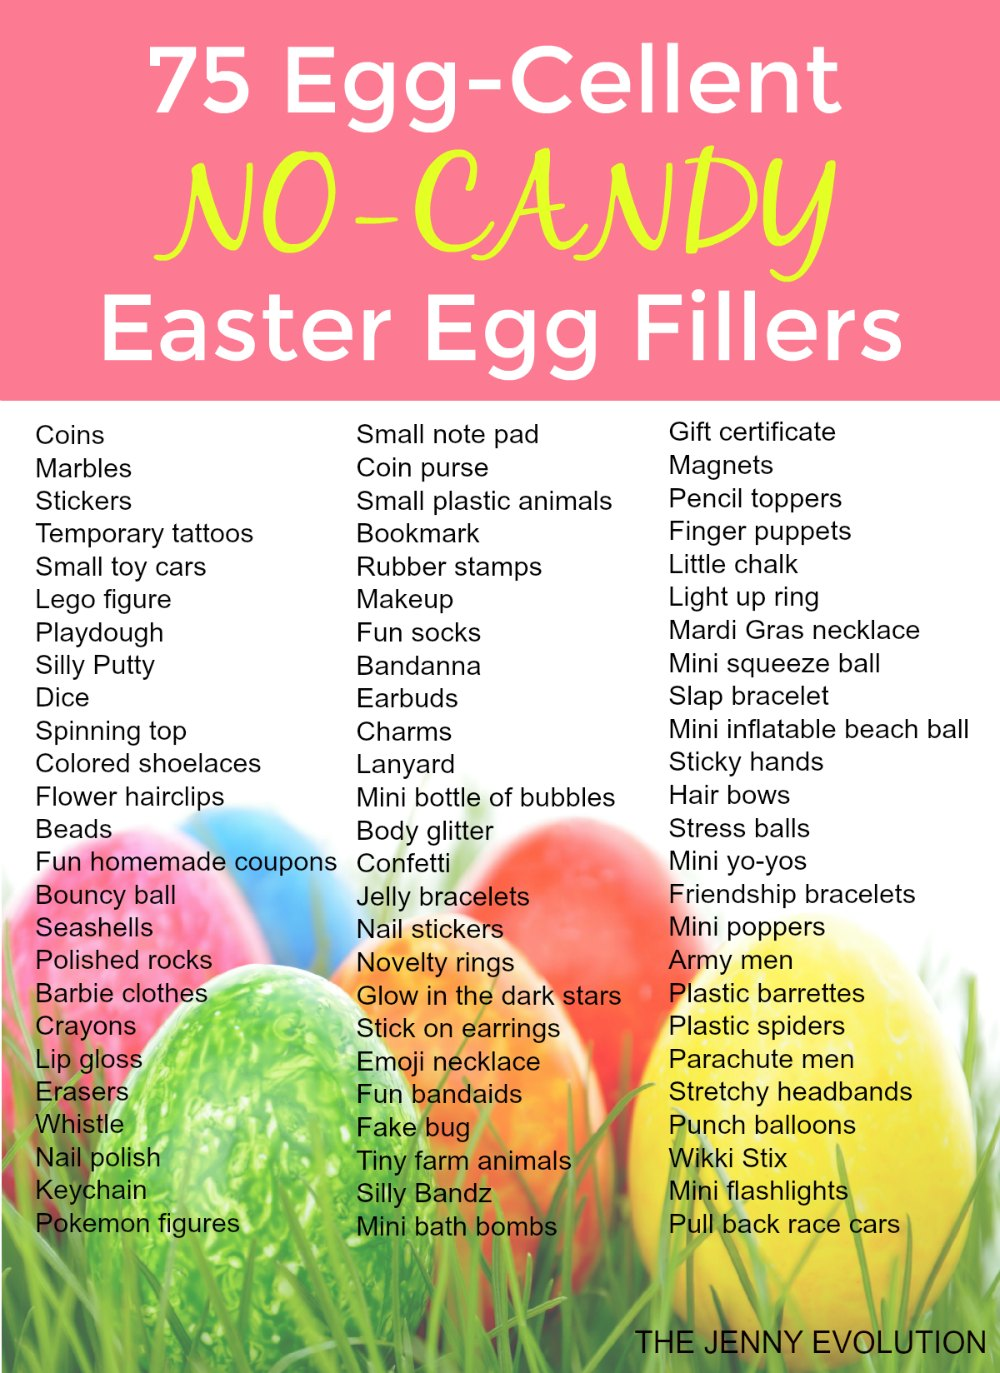 75 Egg-Cellent Non Candy Easter Egg Fillers - Perfect for filling Easter baskets with no food! | Mommy Evolution